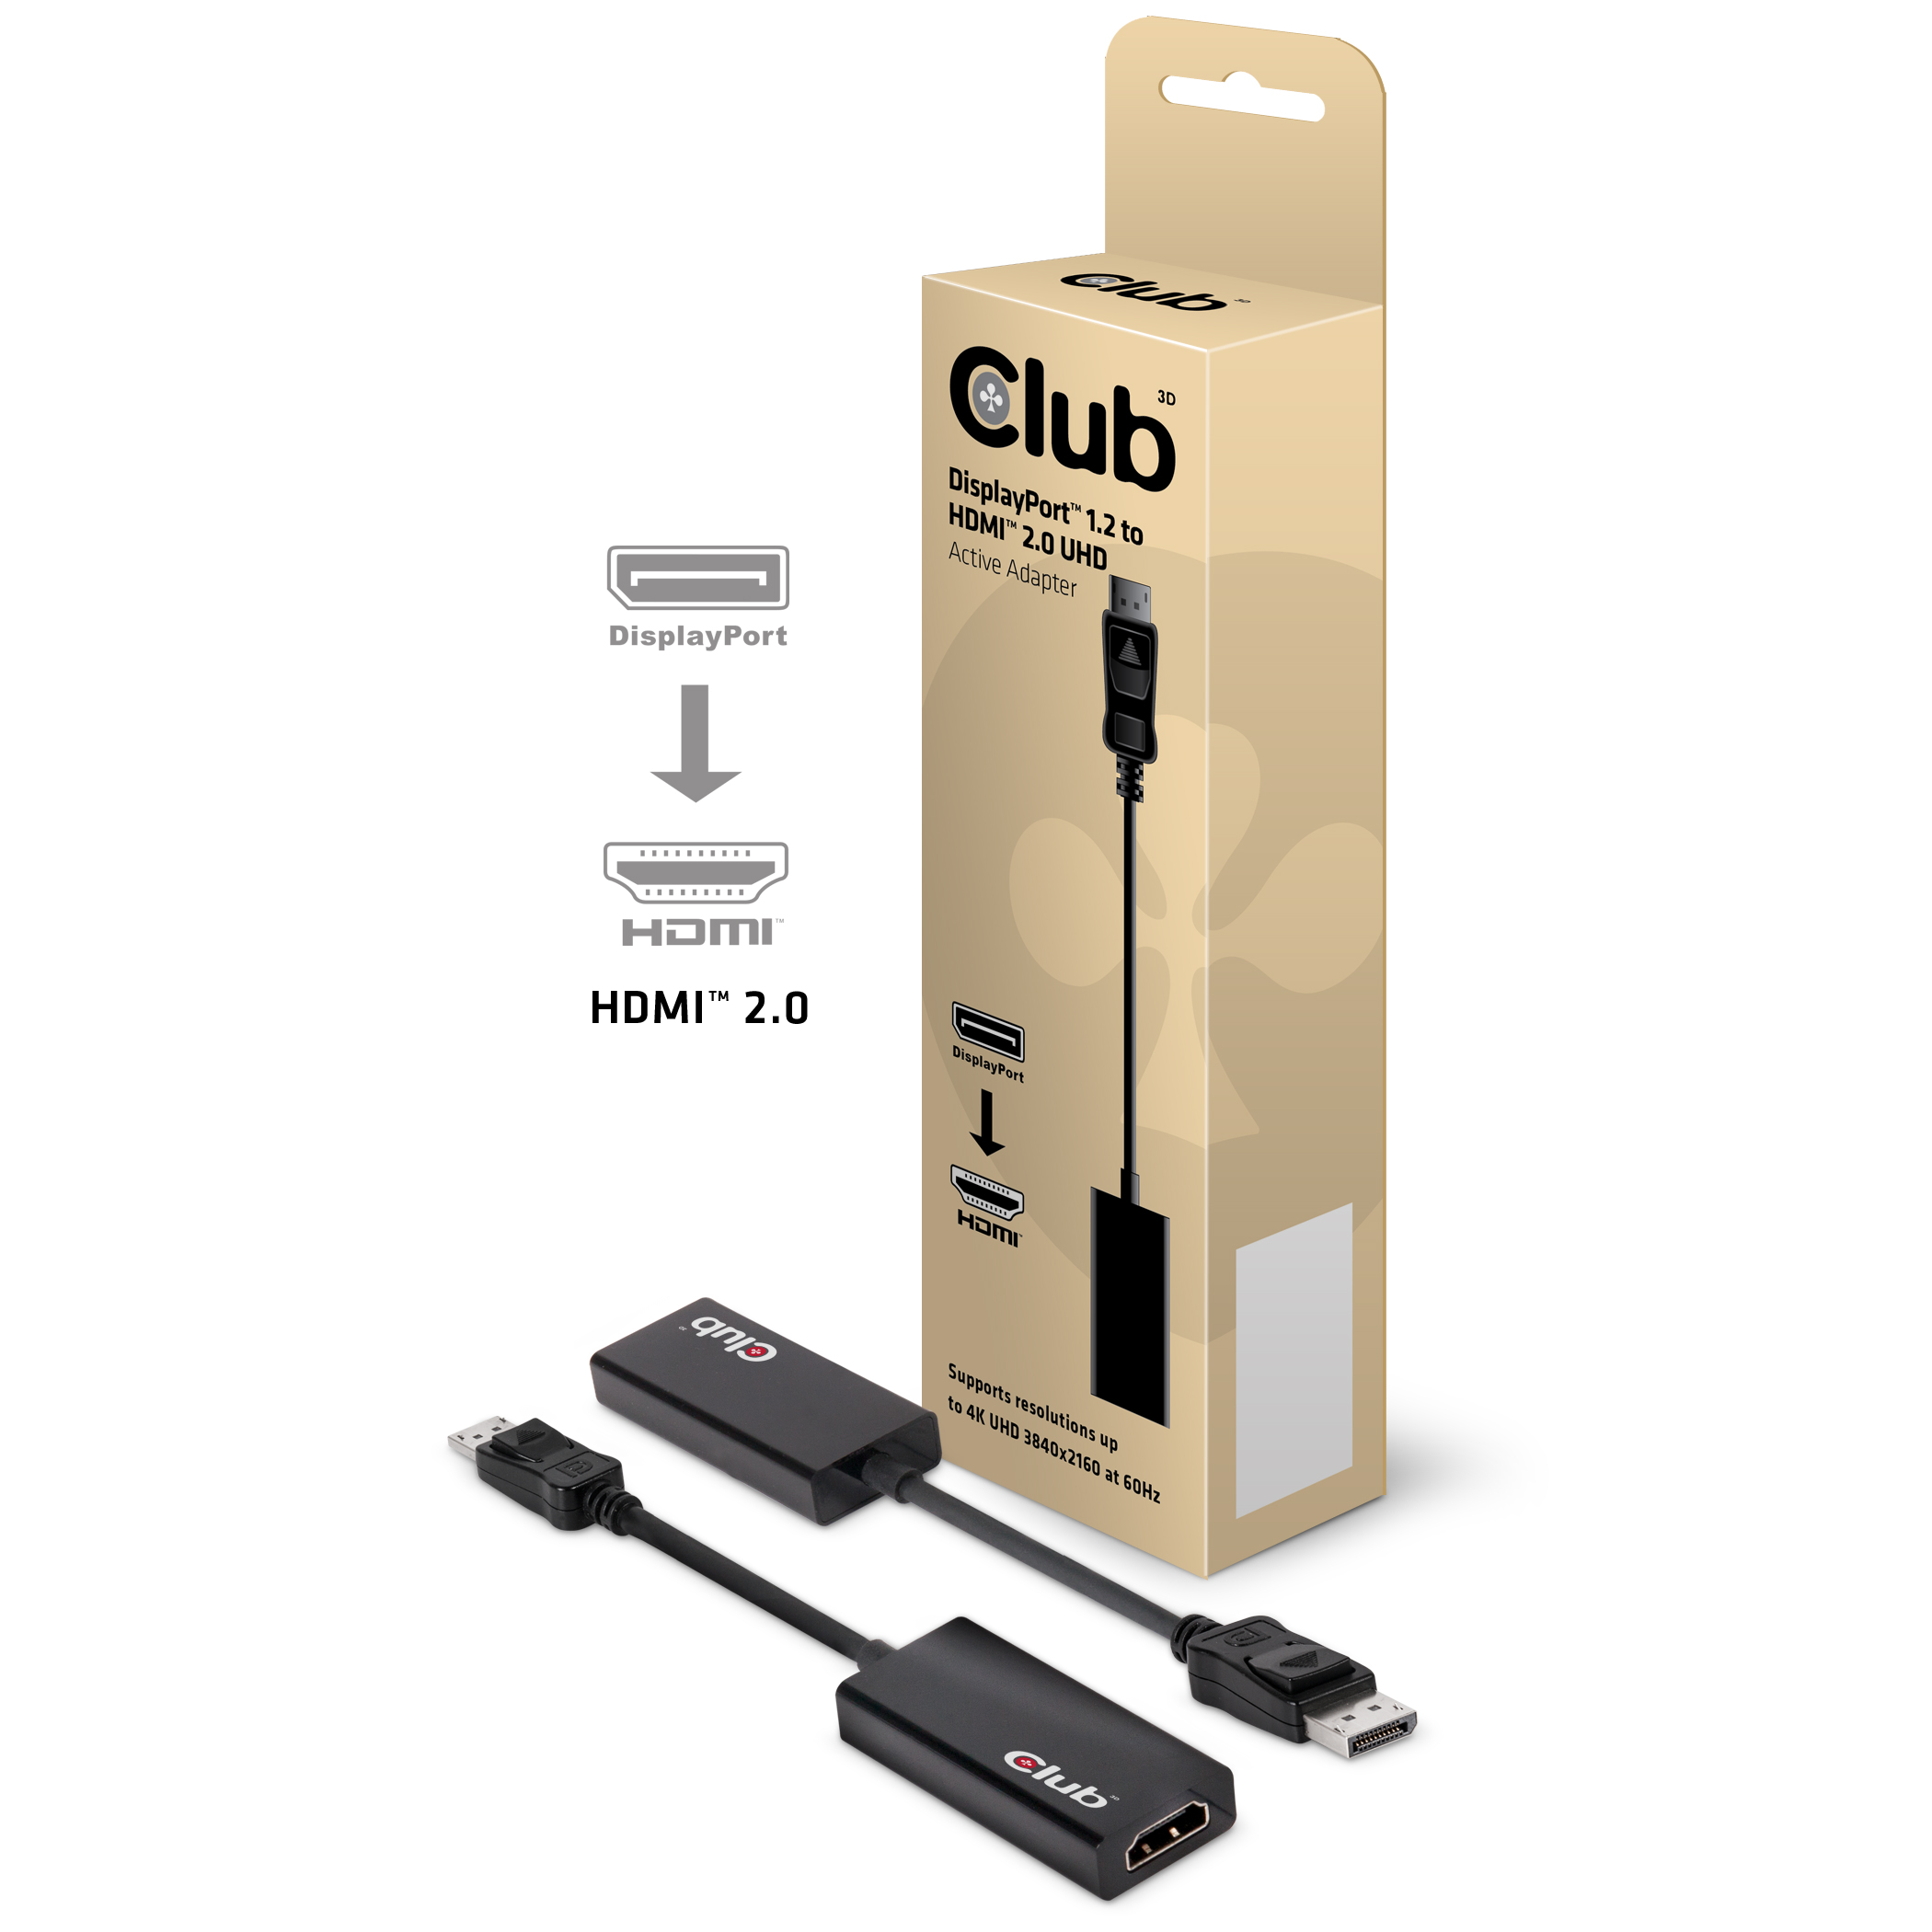 CLUB 3D DISPLAYPORT  1.2 TO HDMI 2.0 4K 60Hz UHD ACTIVE ADAPTER